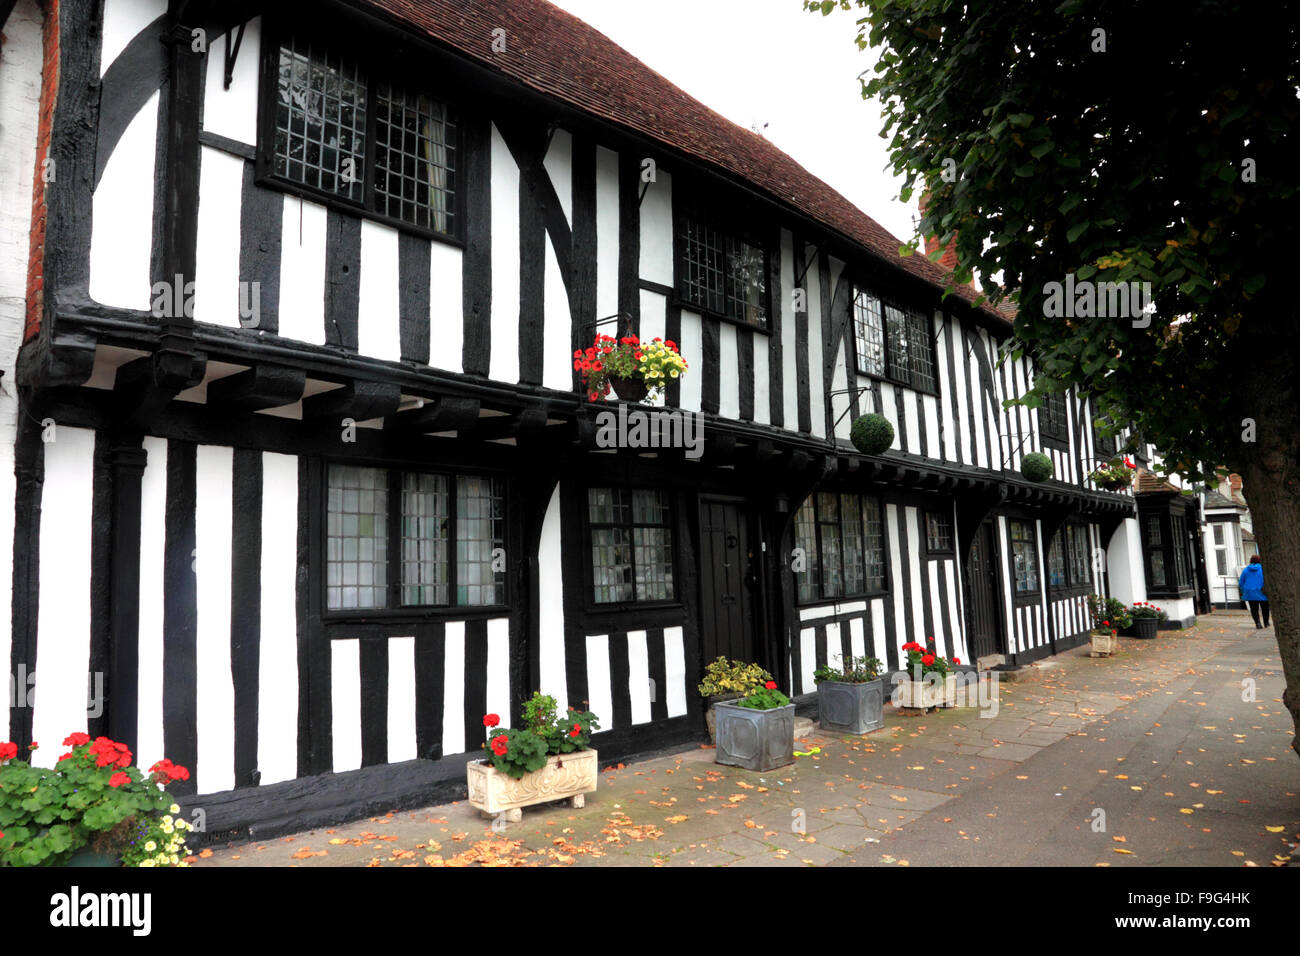 Black and white half-timbered cottages at Henley-in-Arden, Warwickshire. - Stock Image